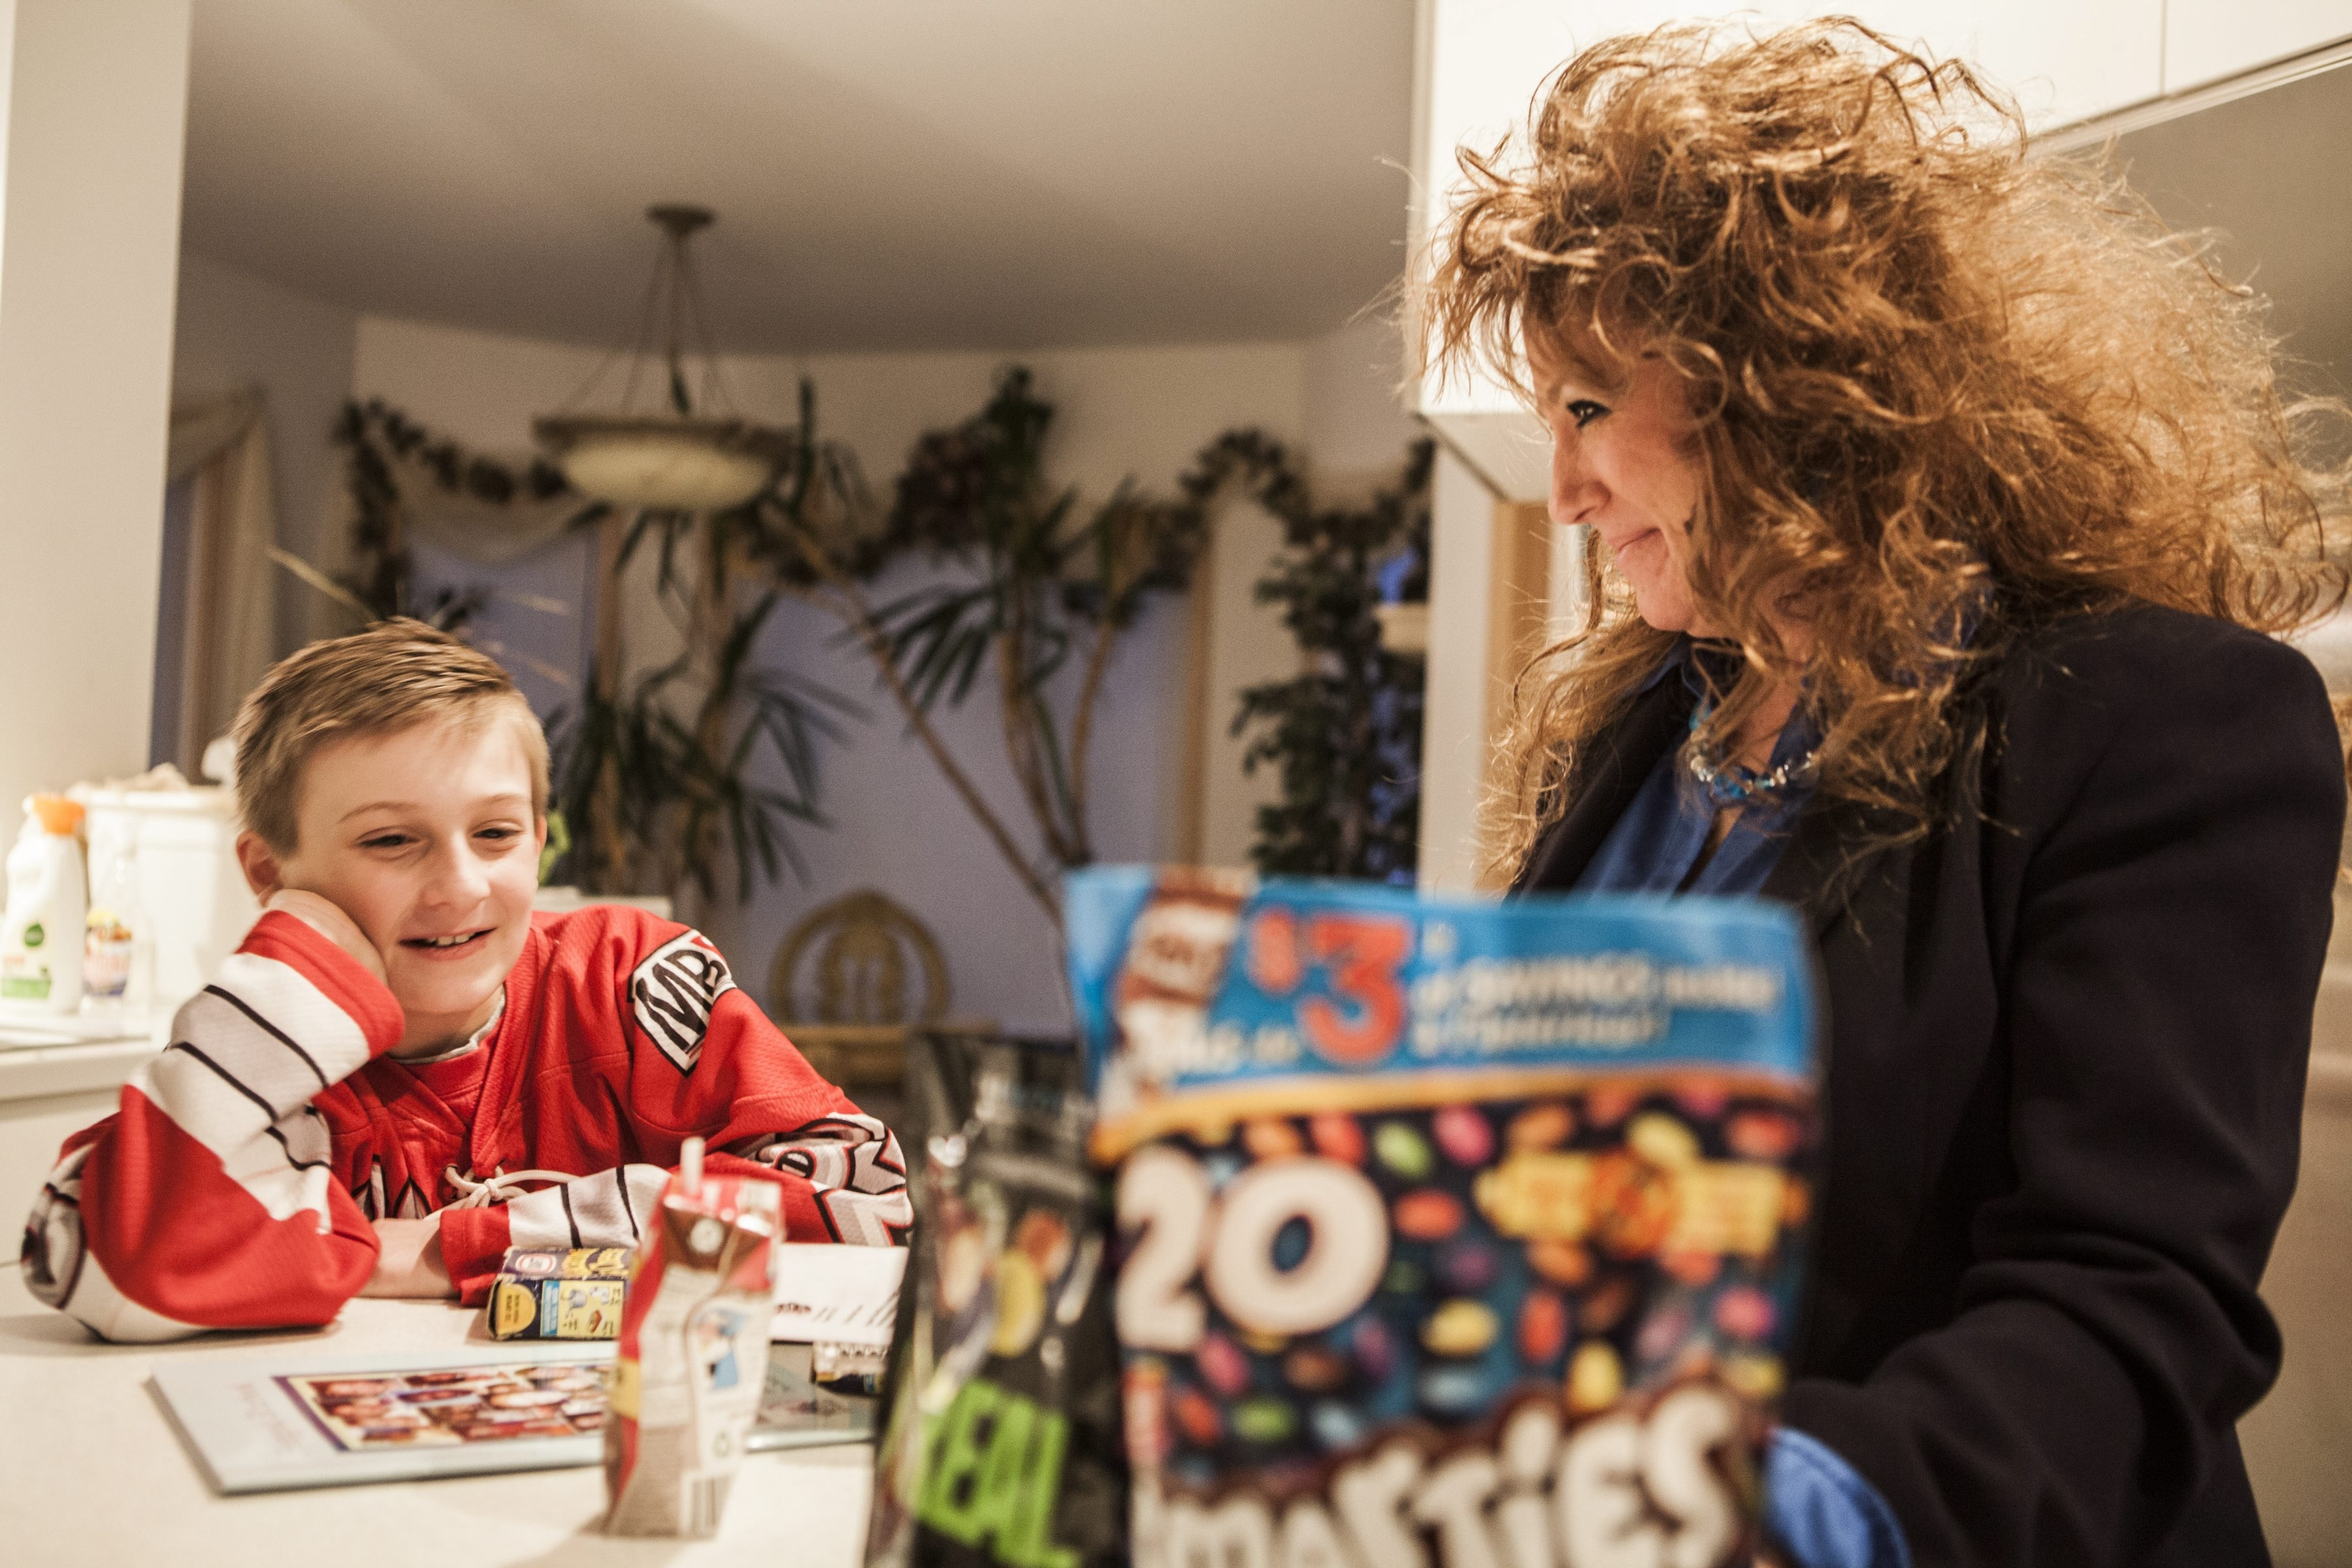 Renee Shutters and her son, Trenton. She testified before the Food and Drug Administration about the danger some food dyes posed to her son, to no avail, but may have better luck with an online petition.